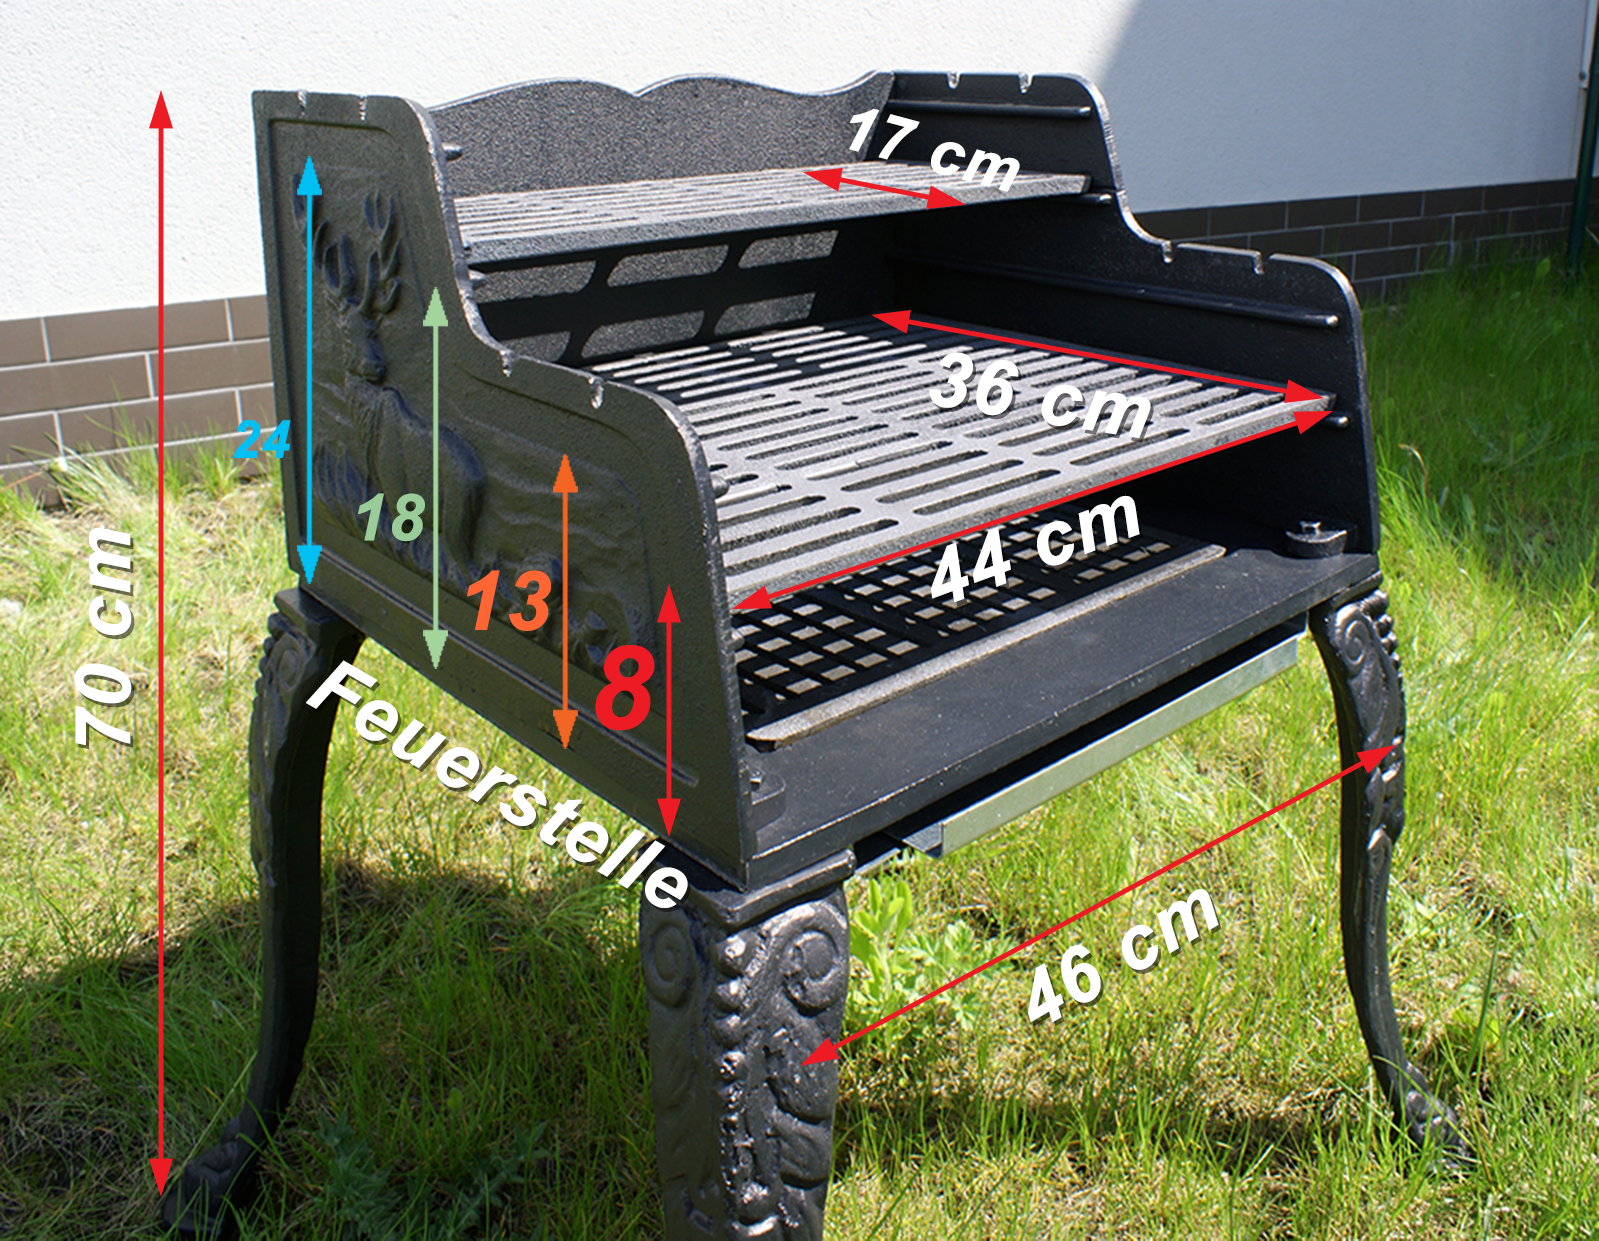 gu eisen grill holzkohle standgrill gartengrill holzkohlegrill barbecue garten ebay. Black Bedroom Furniture Sets. Home Design Ideas